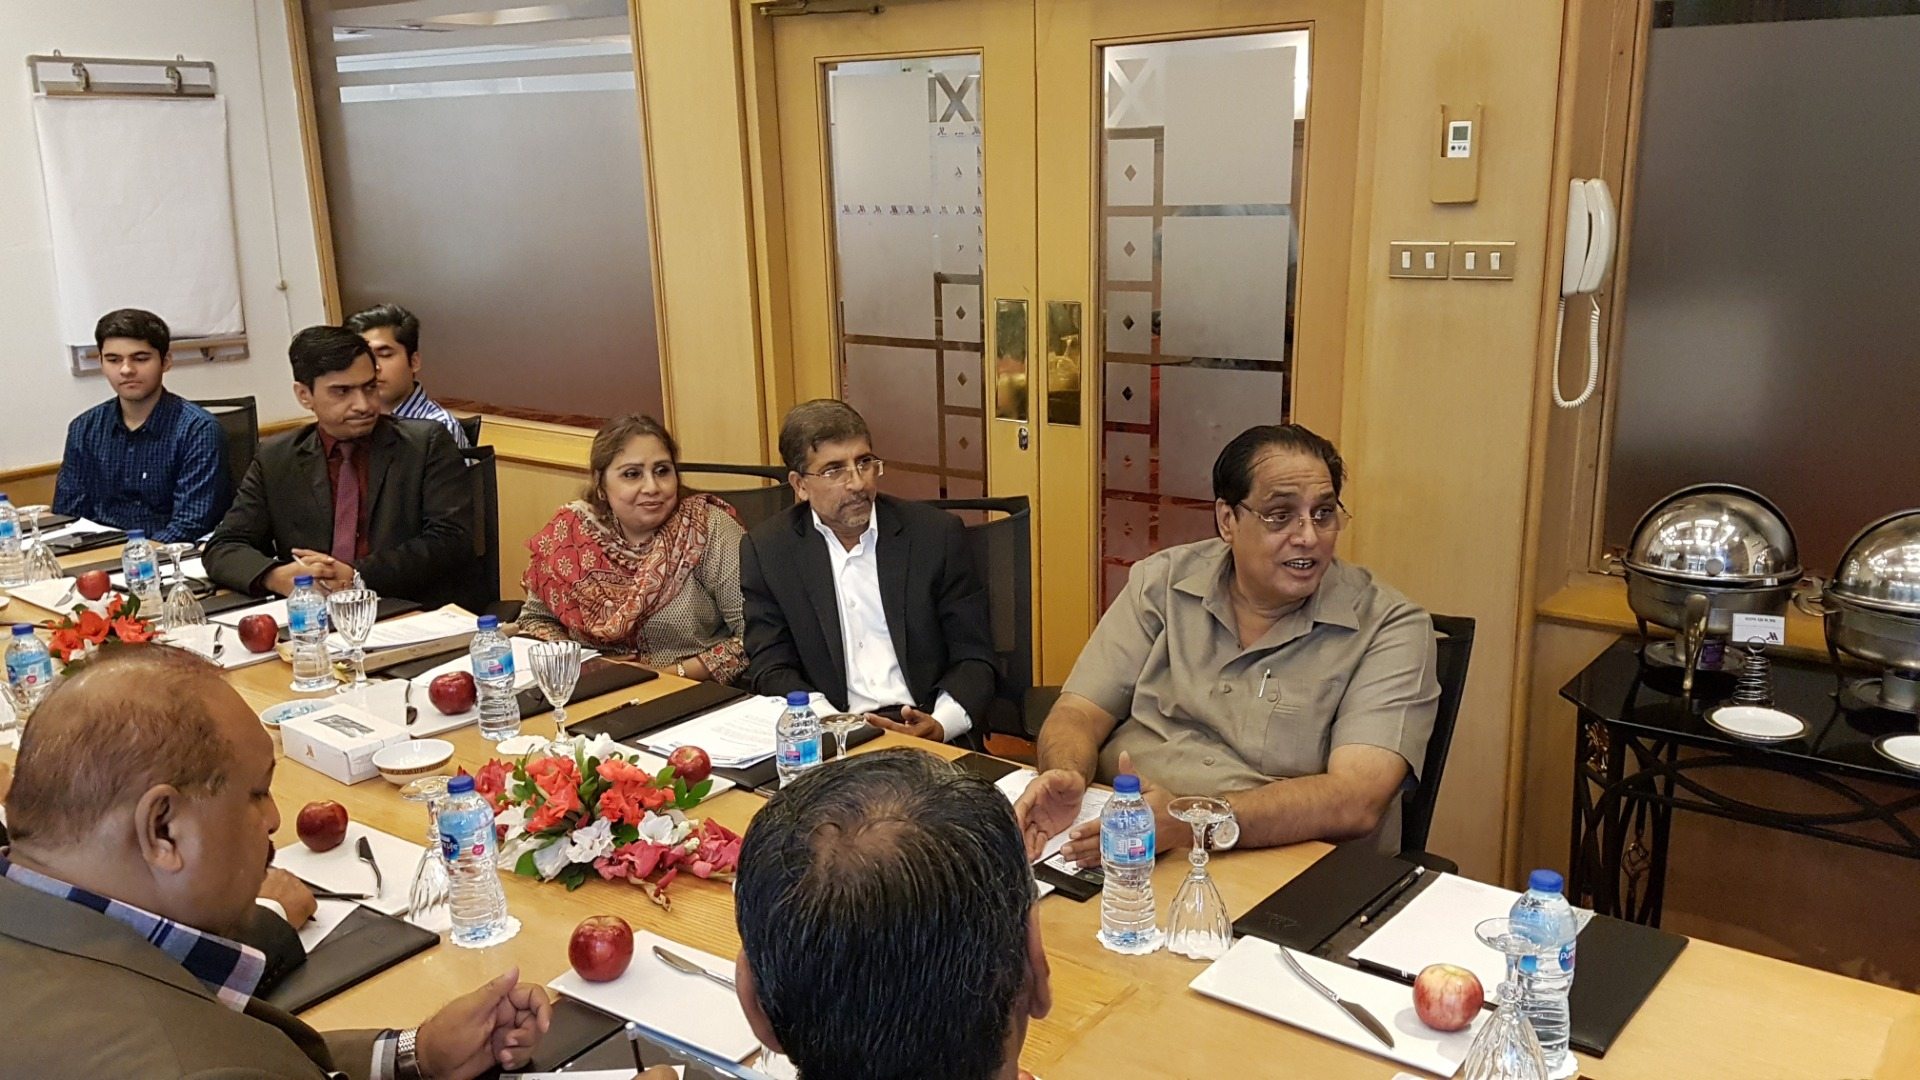 A meeting was held with Additional Secretary, Regional Director and other Officials of IPC Ministry